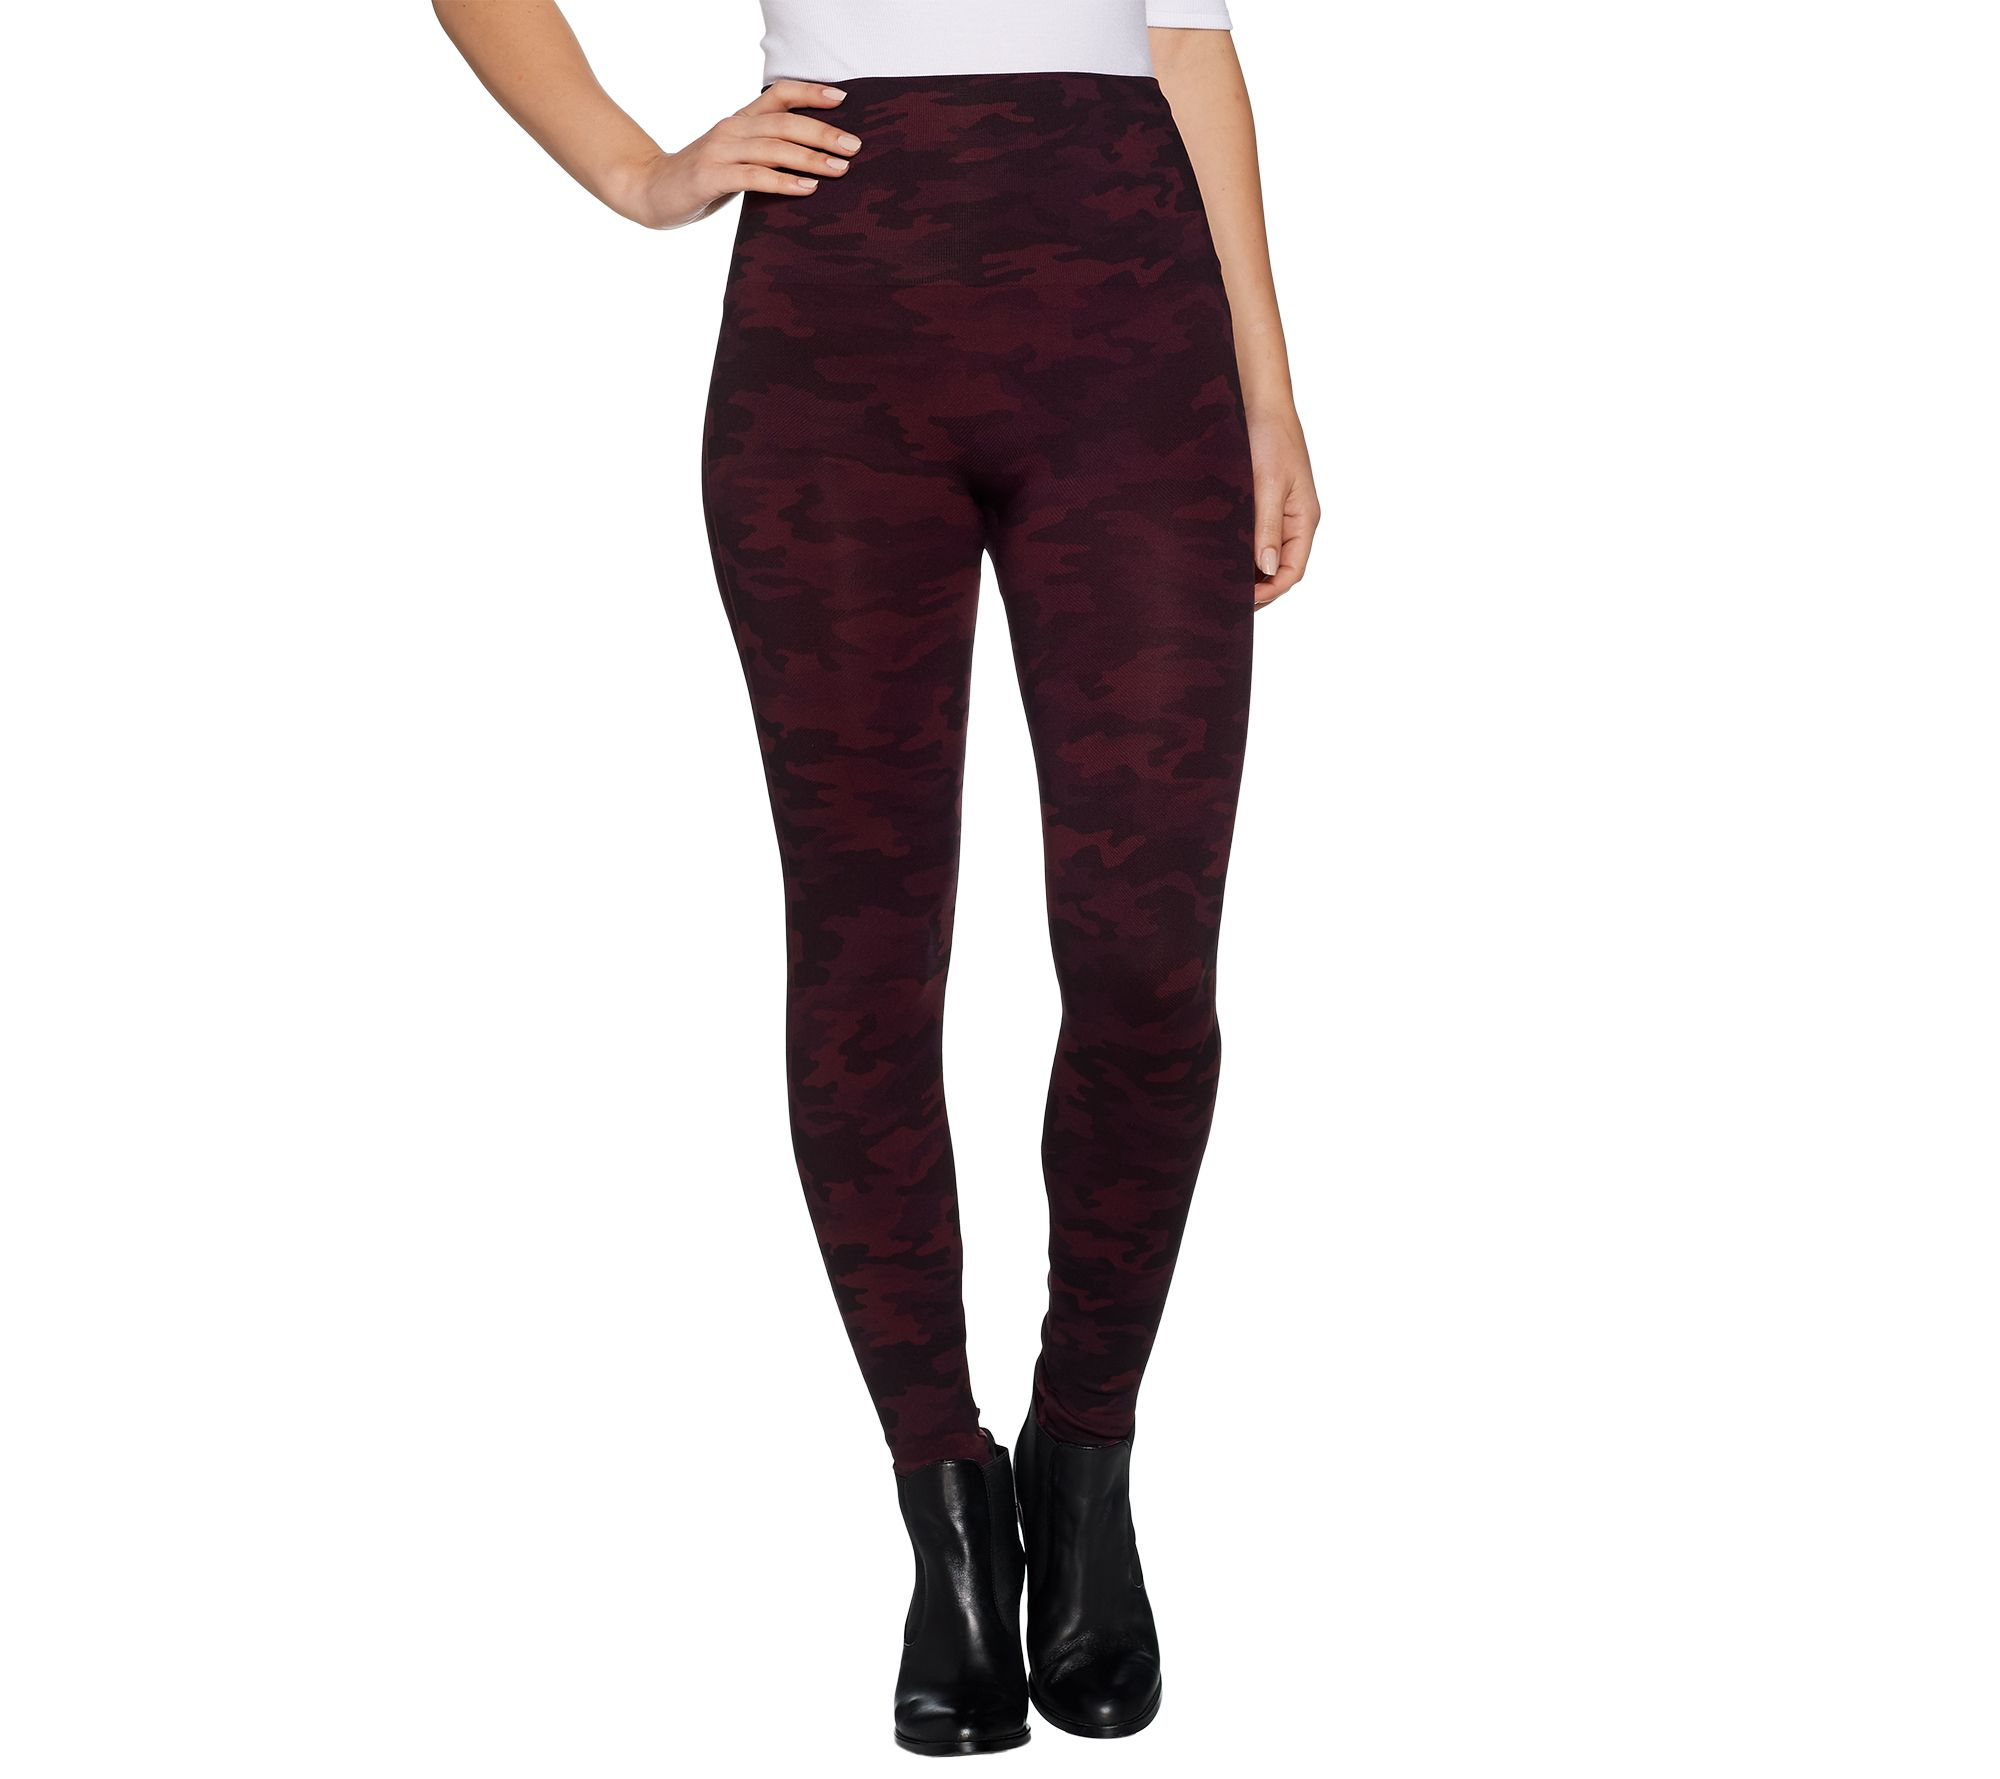 83861e681 Spanx Look at Me Now Seamless Leggings - Page 1 — QVC.com